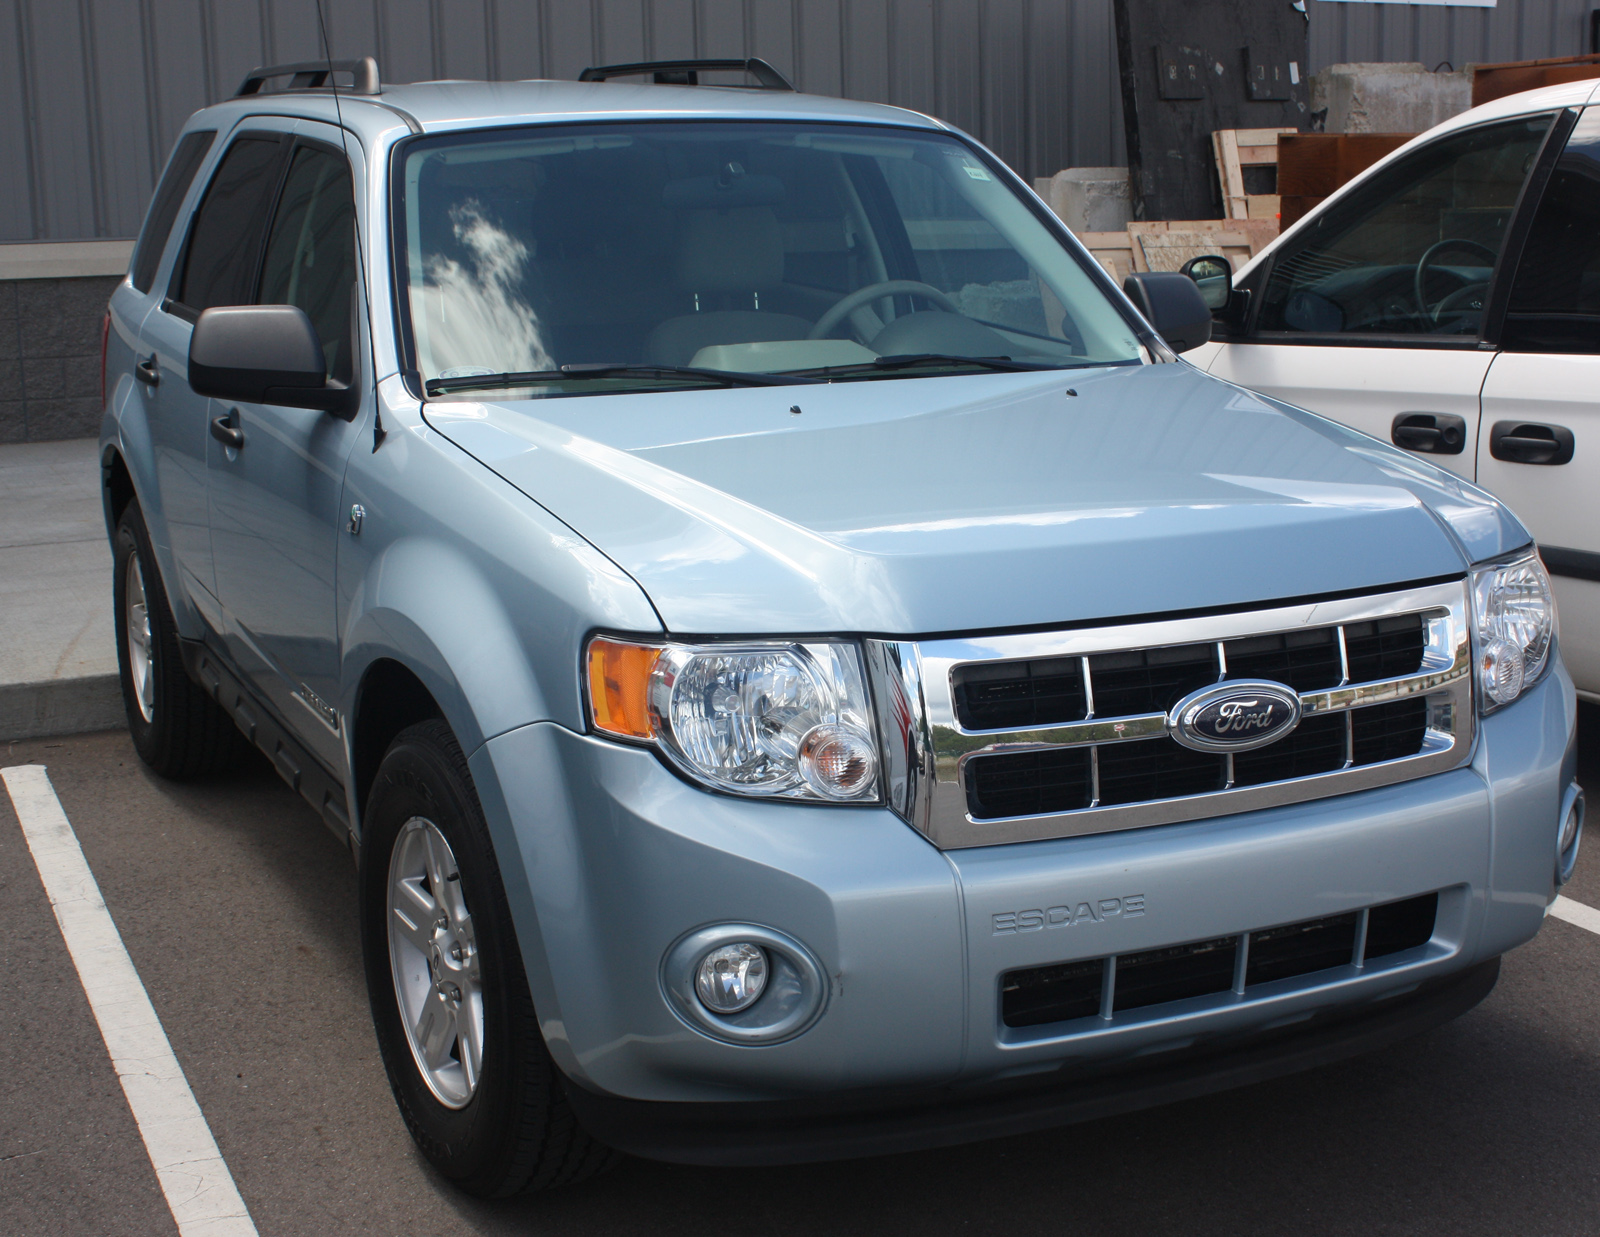 2008 ford escape hybrid for sale 9 7 10